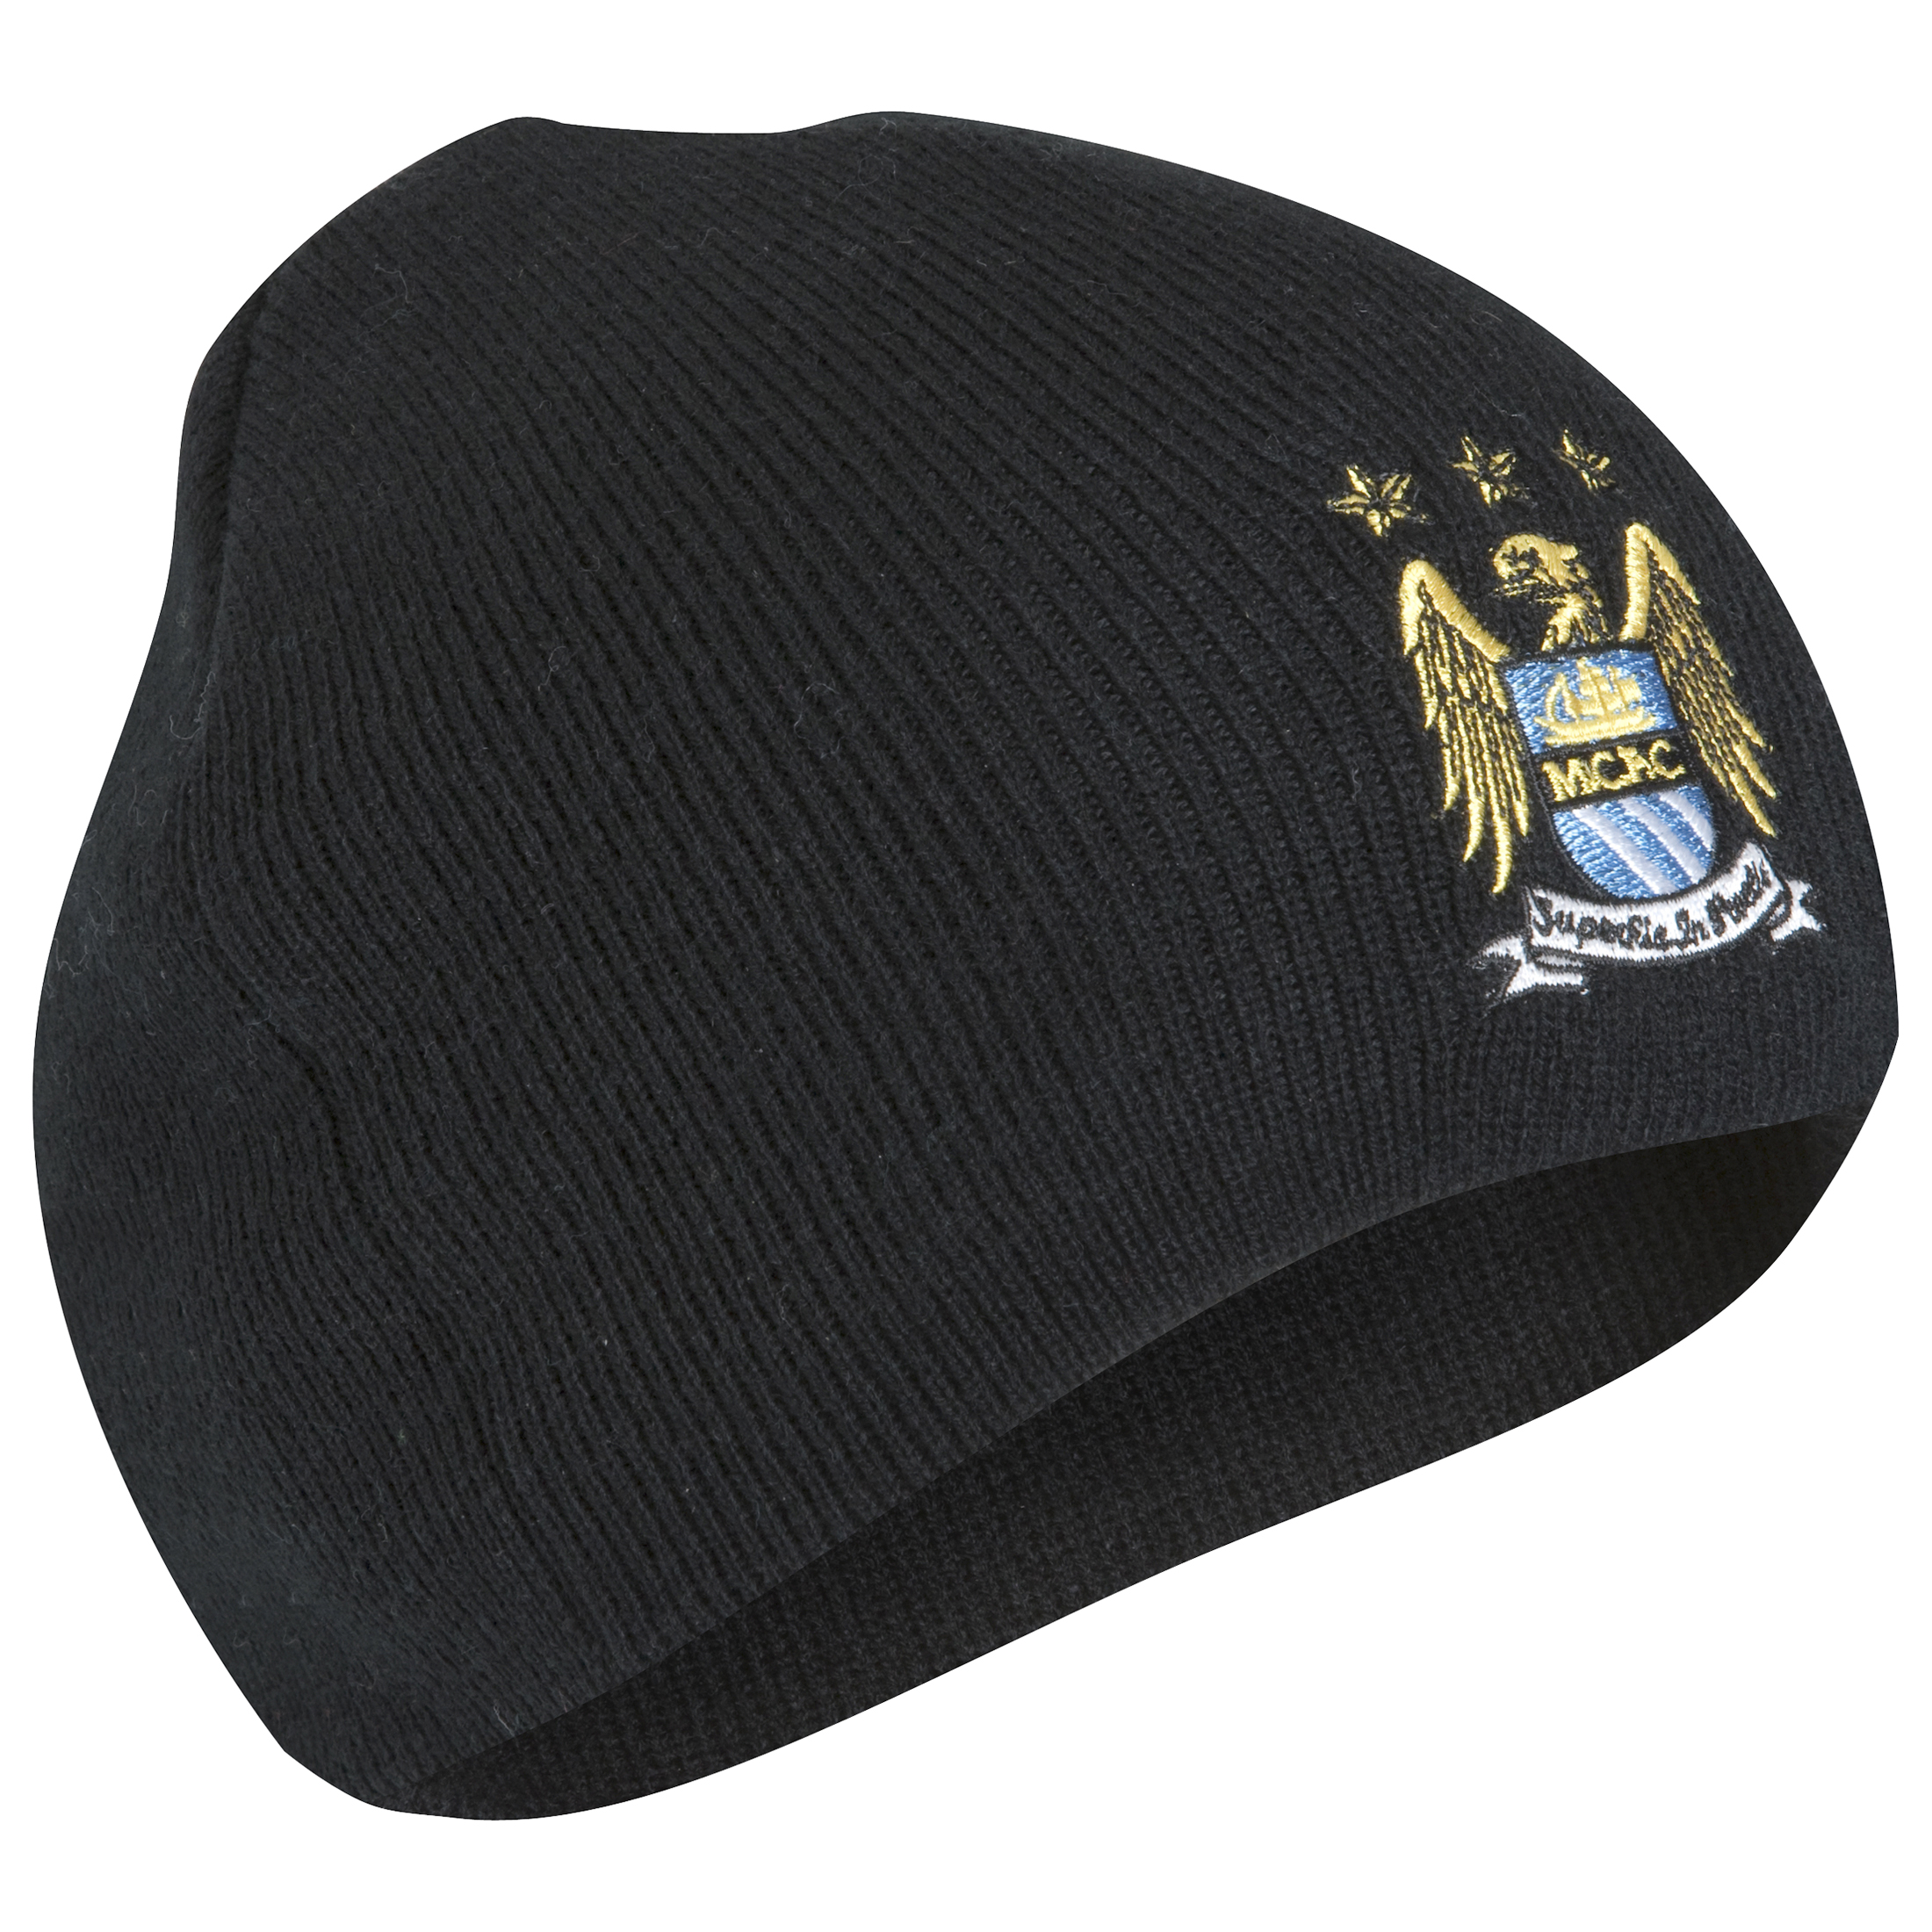 Manchester City Franklin Crest Beanie Junior - Black